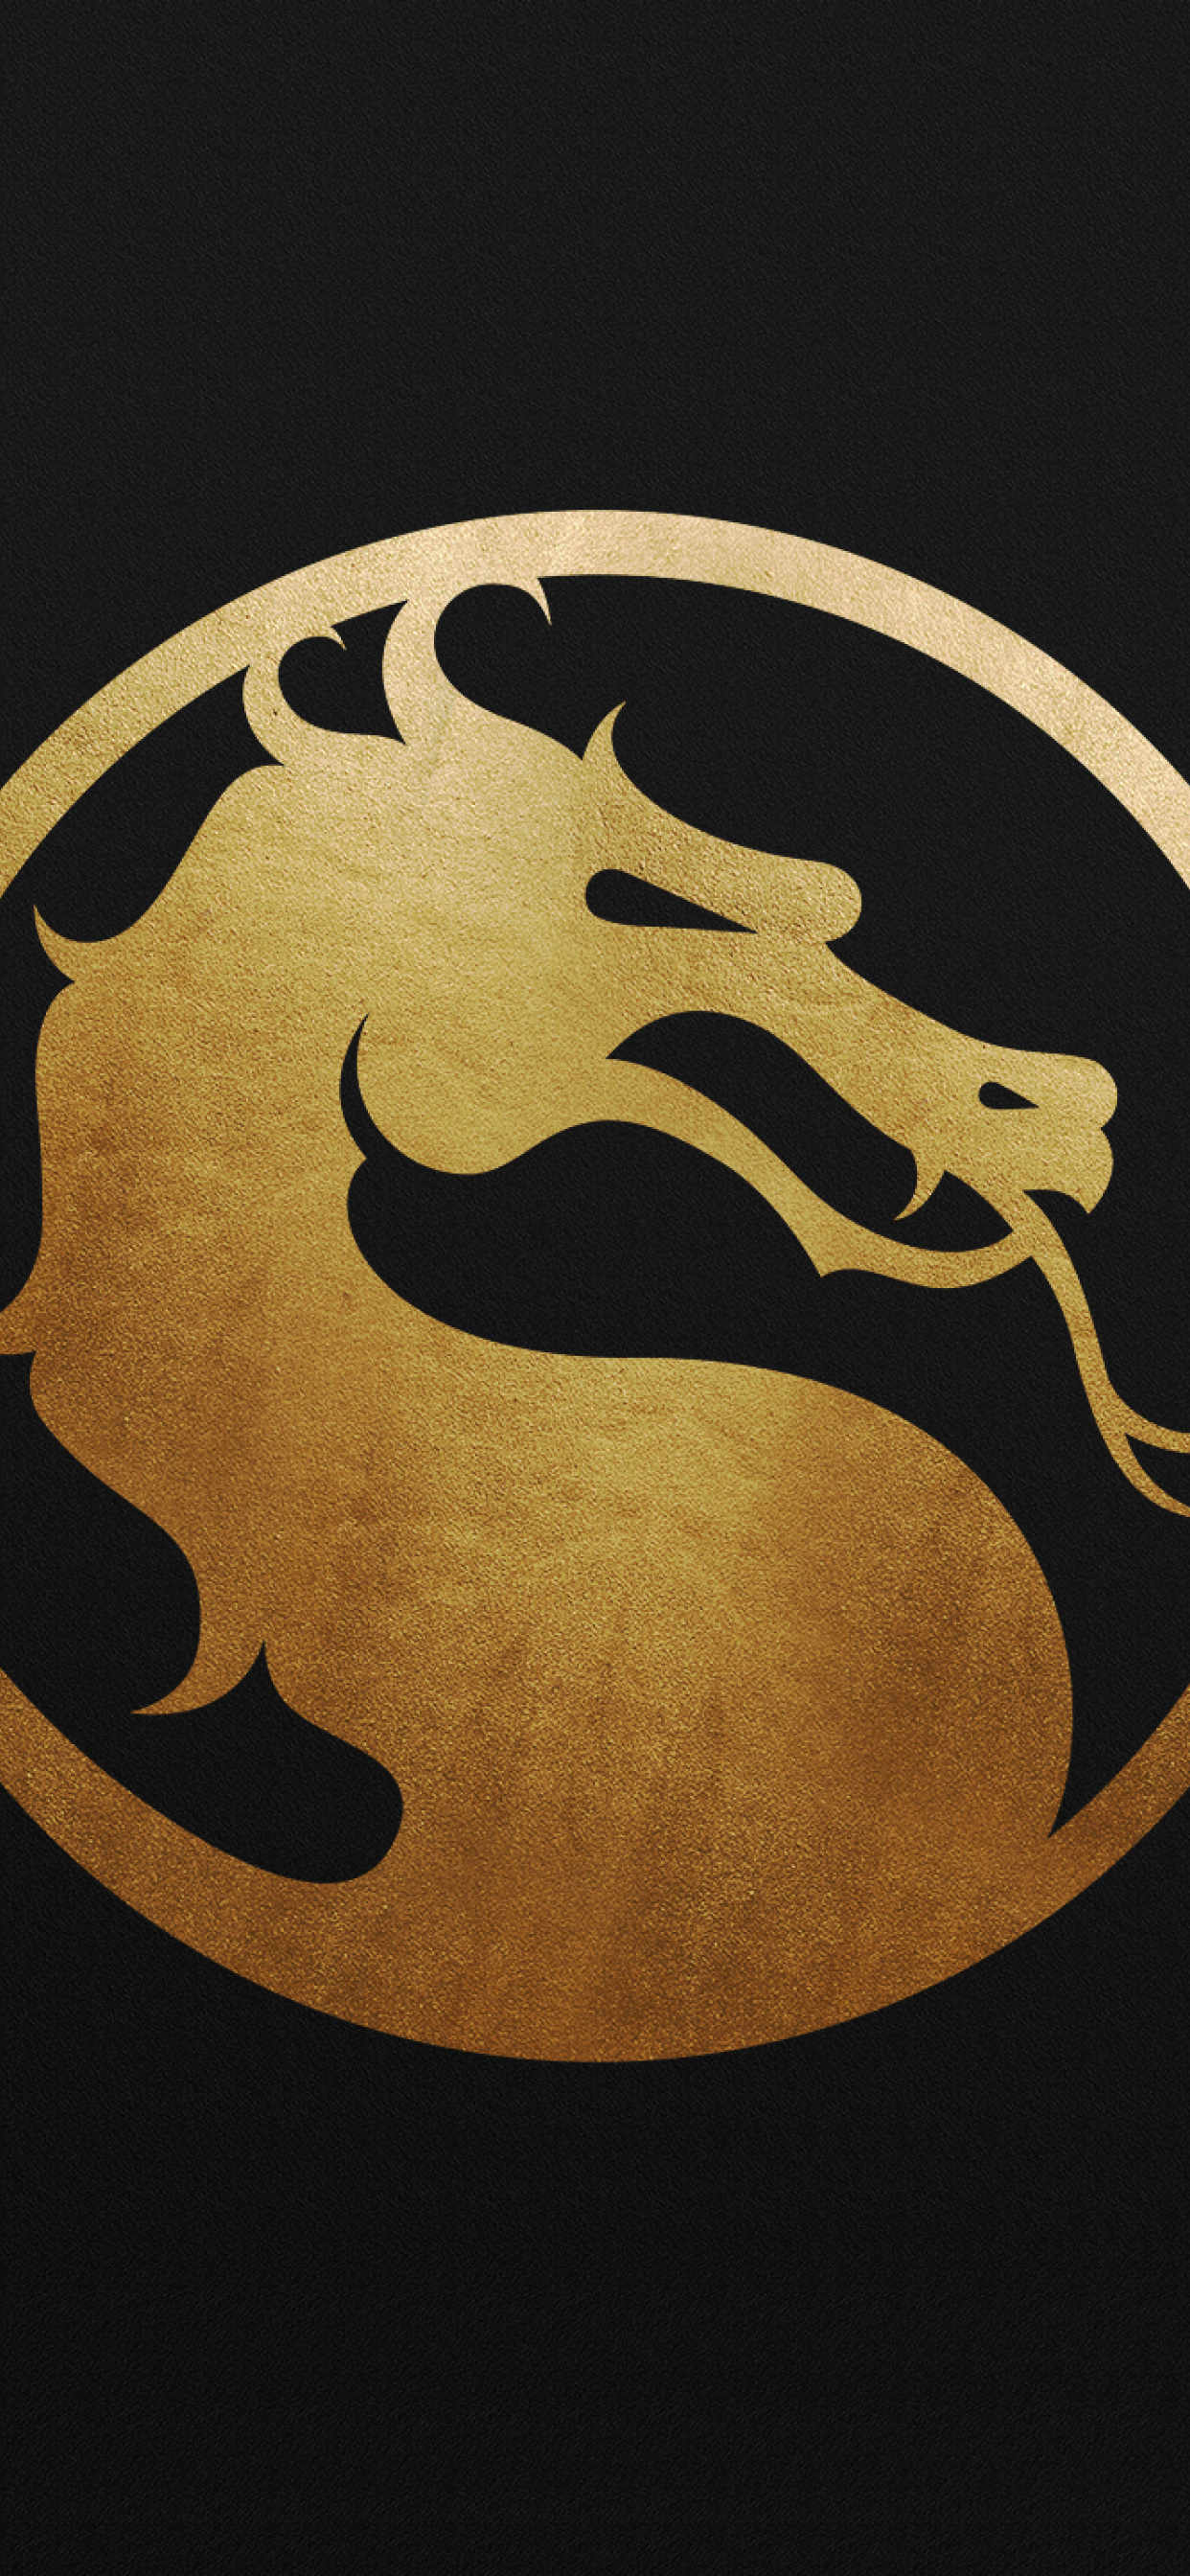 1242x2688 Mortal Kombat 11 Logo Iphone Xs Max Wallpaper Hd Games 4k Wallpapers Images Photos And Background